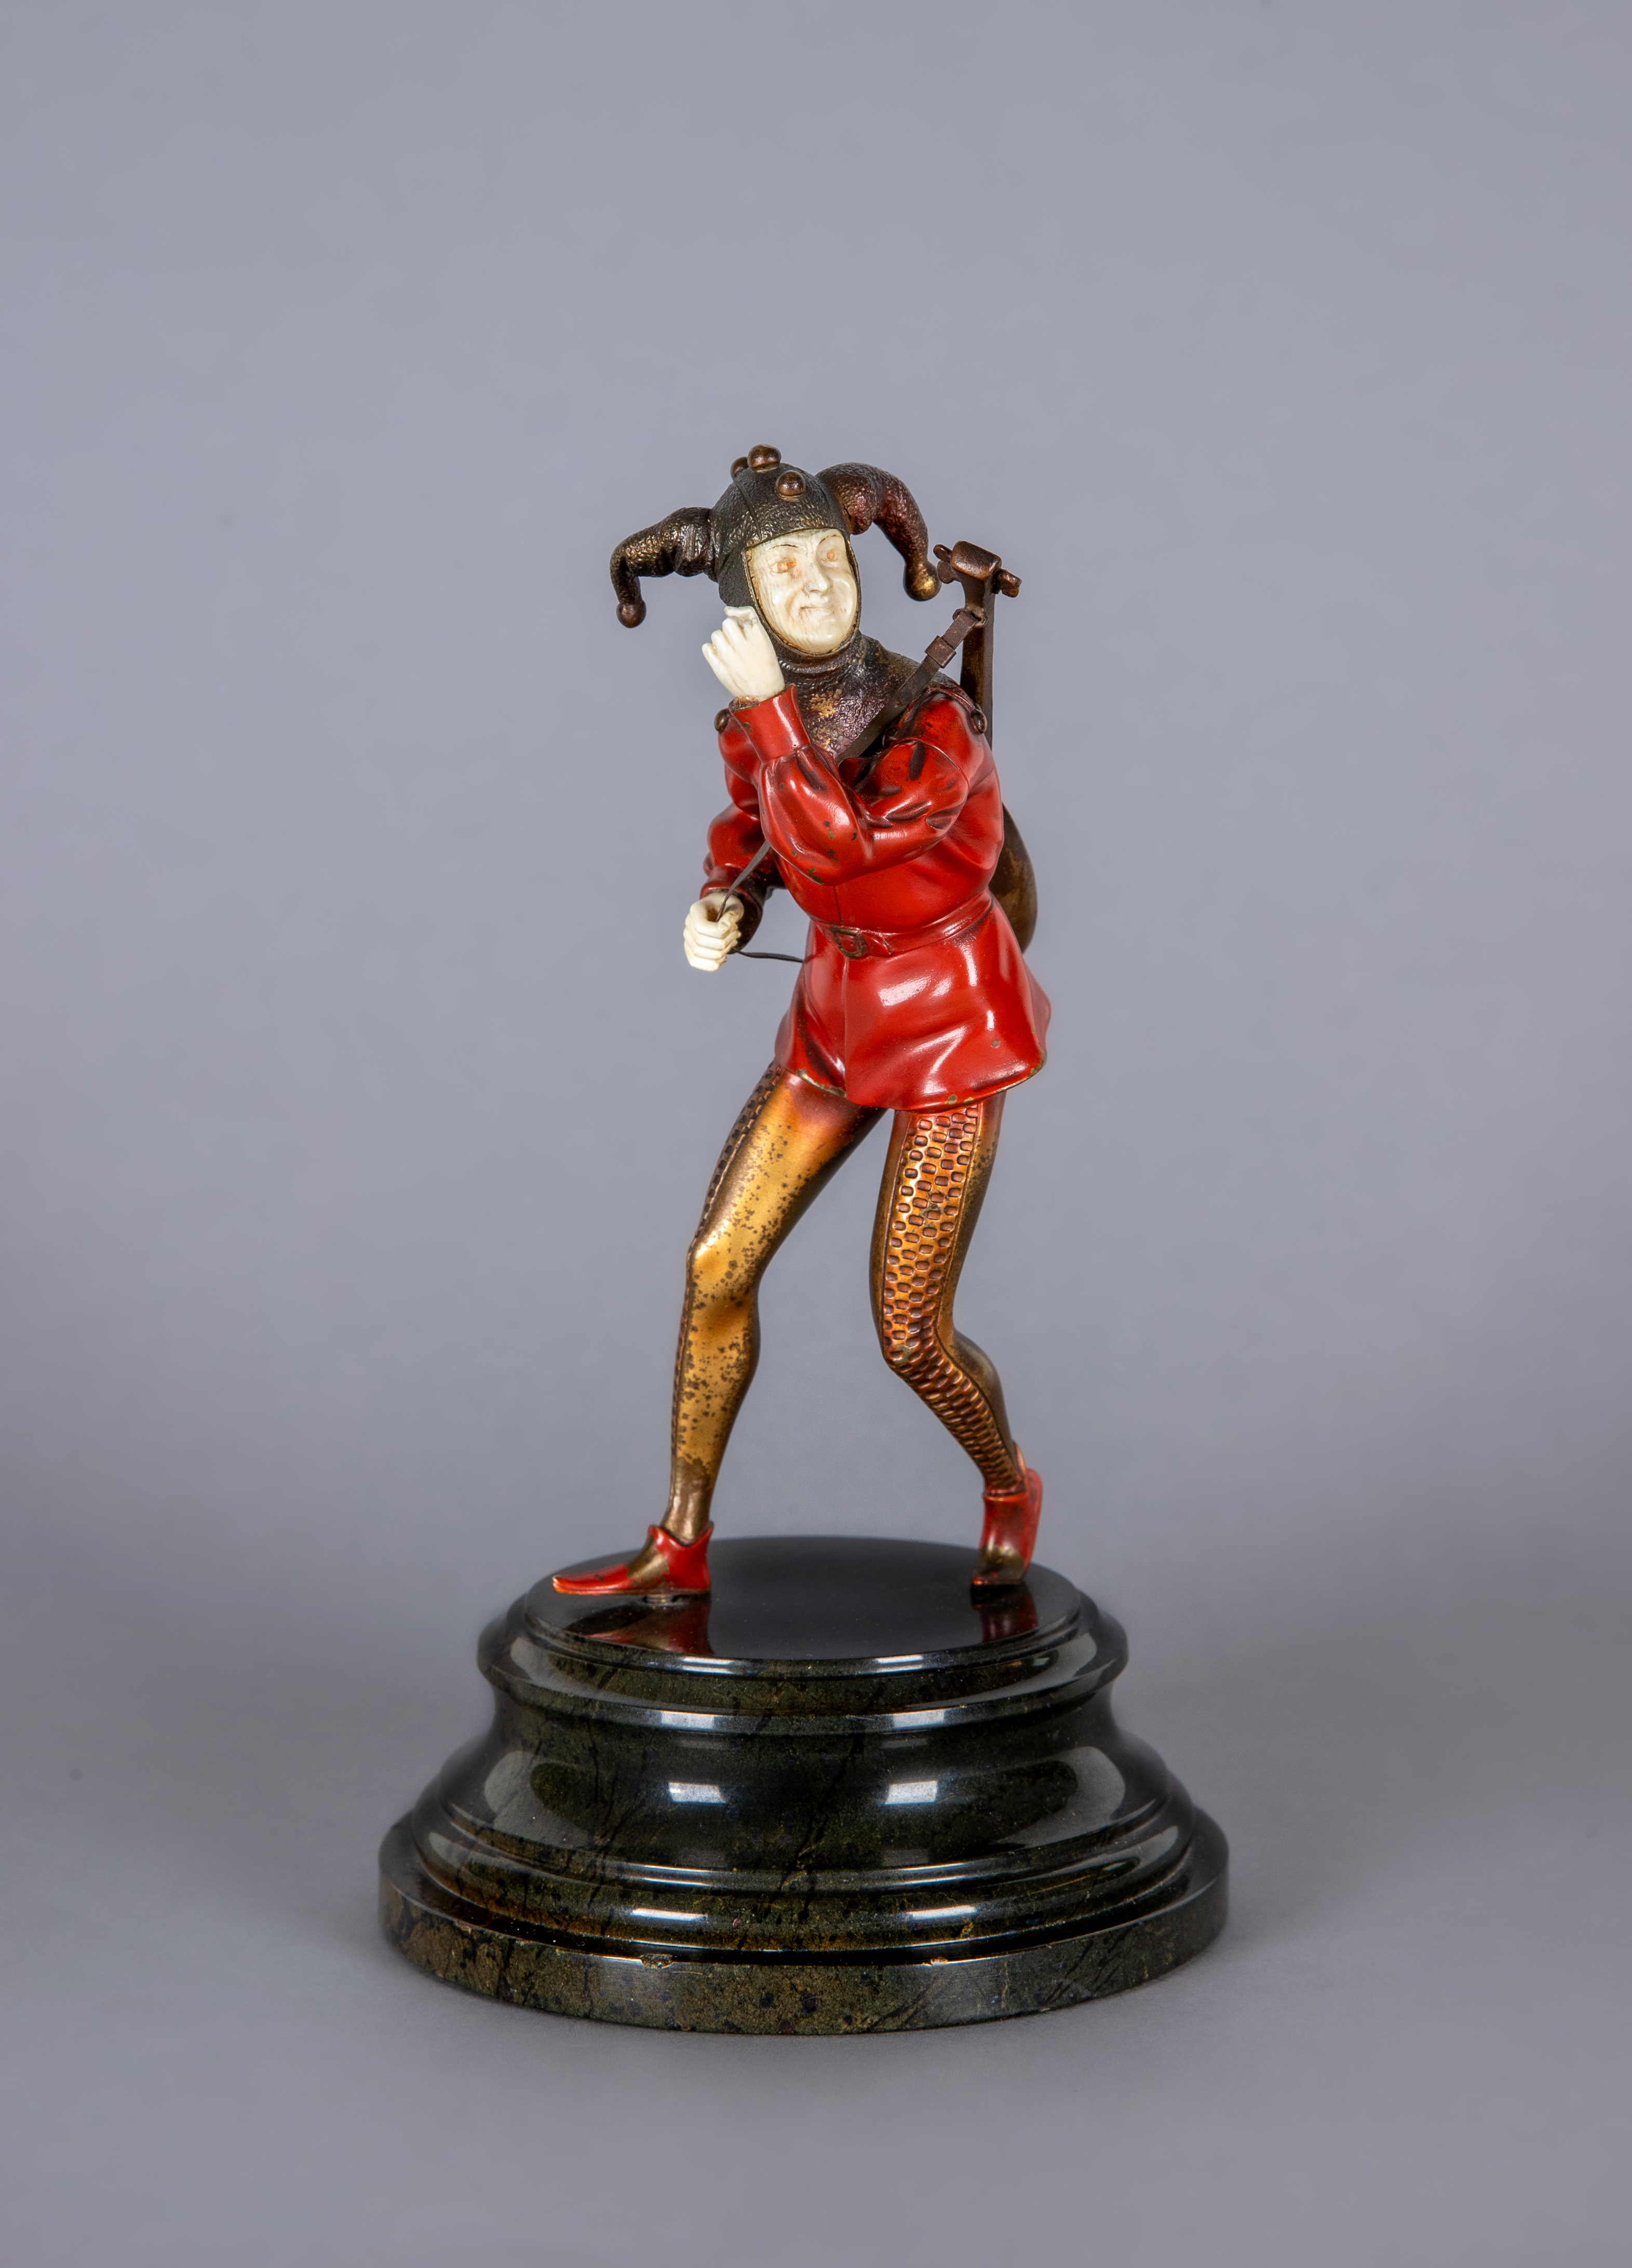 AN ART DECO COLD PAINTED BRONZE FIGURE, cast as a jester wearing red motley with a lute slung over